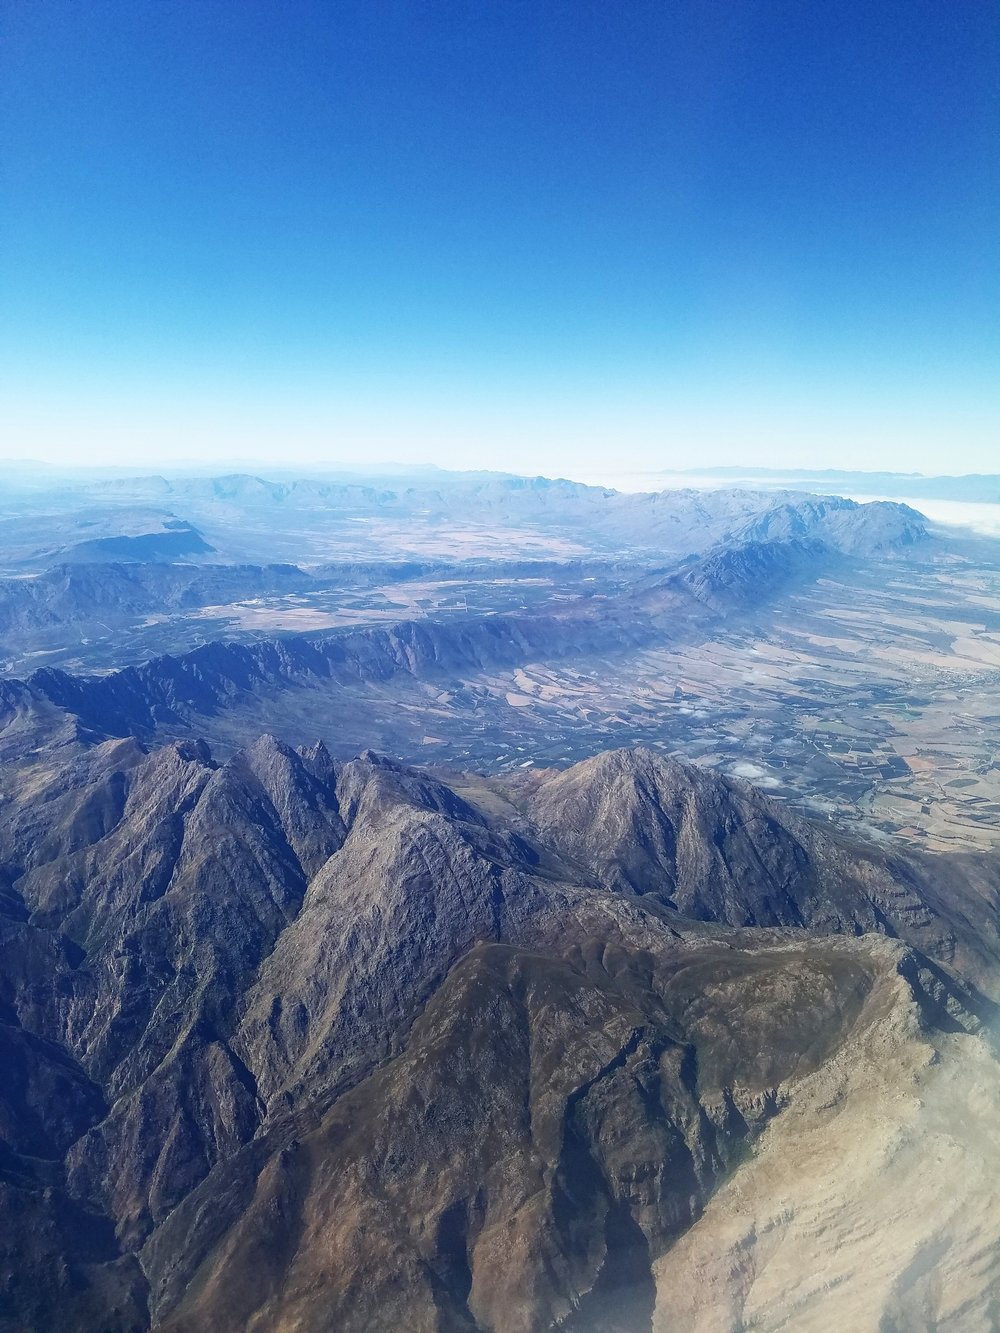 My view from the plane!